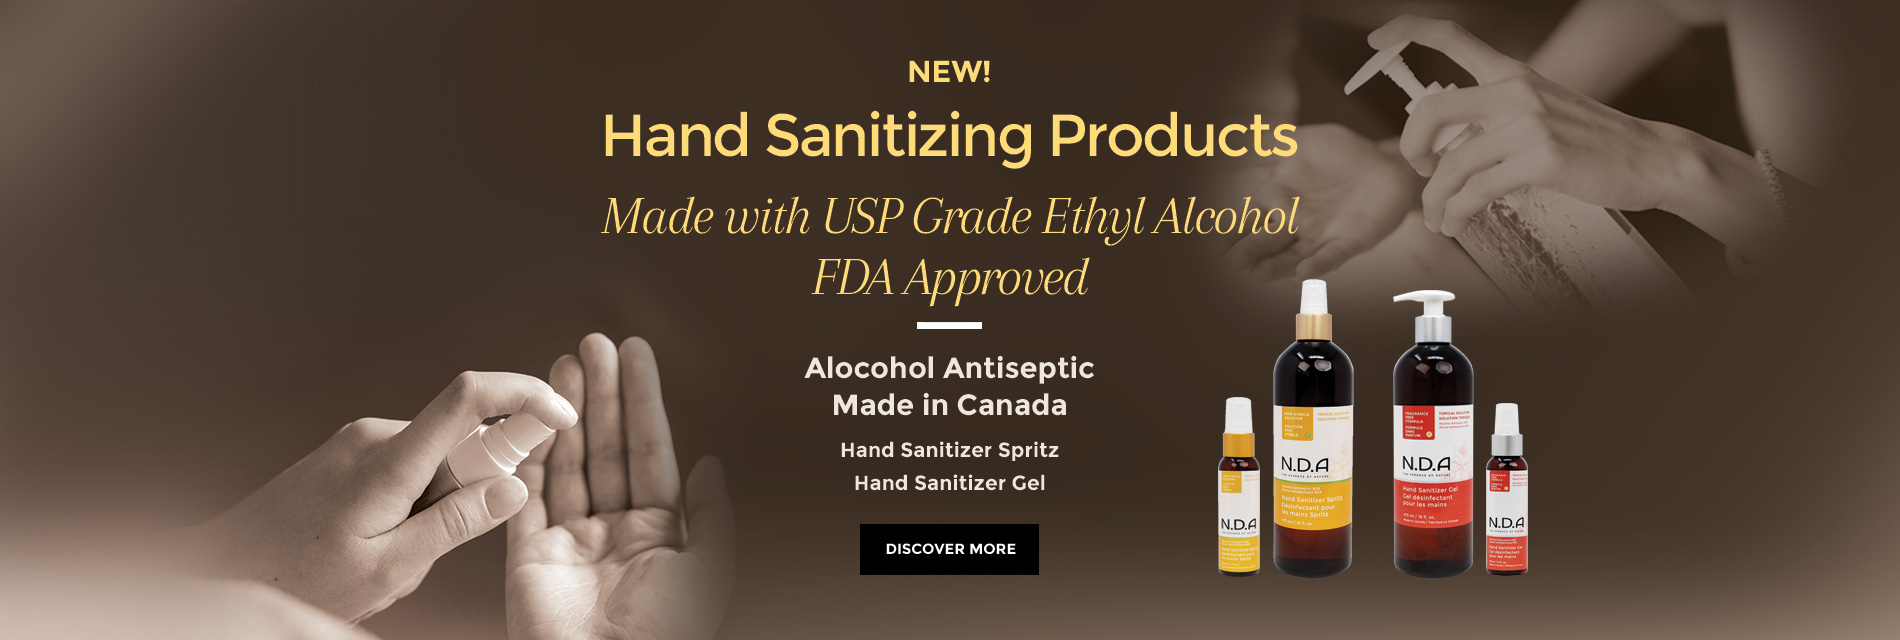 Hand Sanitizing Products